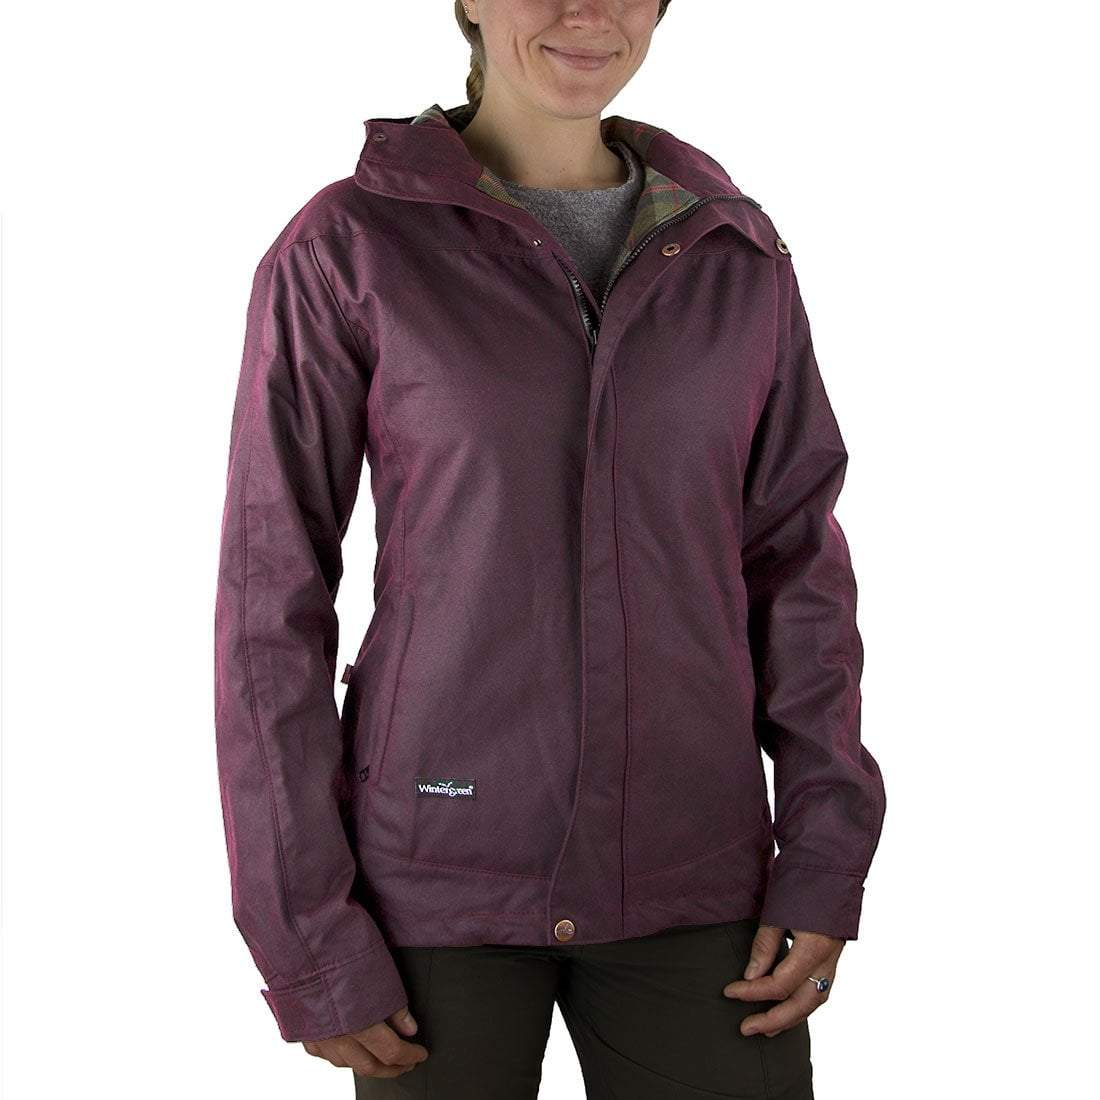 Wintergreen Northern Wear Jacket New! Waxed Cotton Echo Trail Jacket Lined (Women's) clothing made in america minnesota made outdoor clothing ely hand made outdoor clothing Made in USA